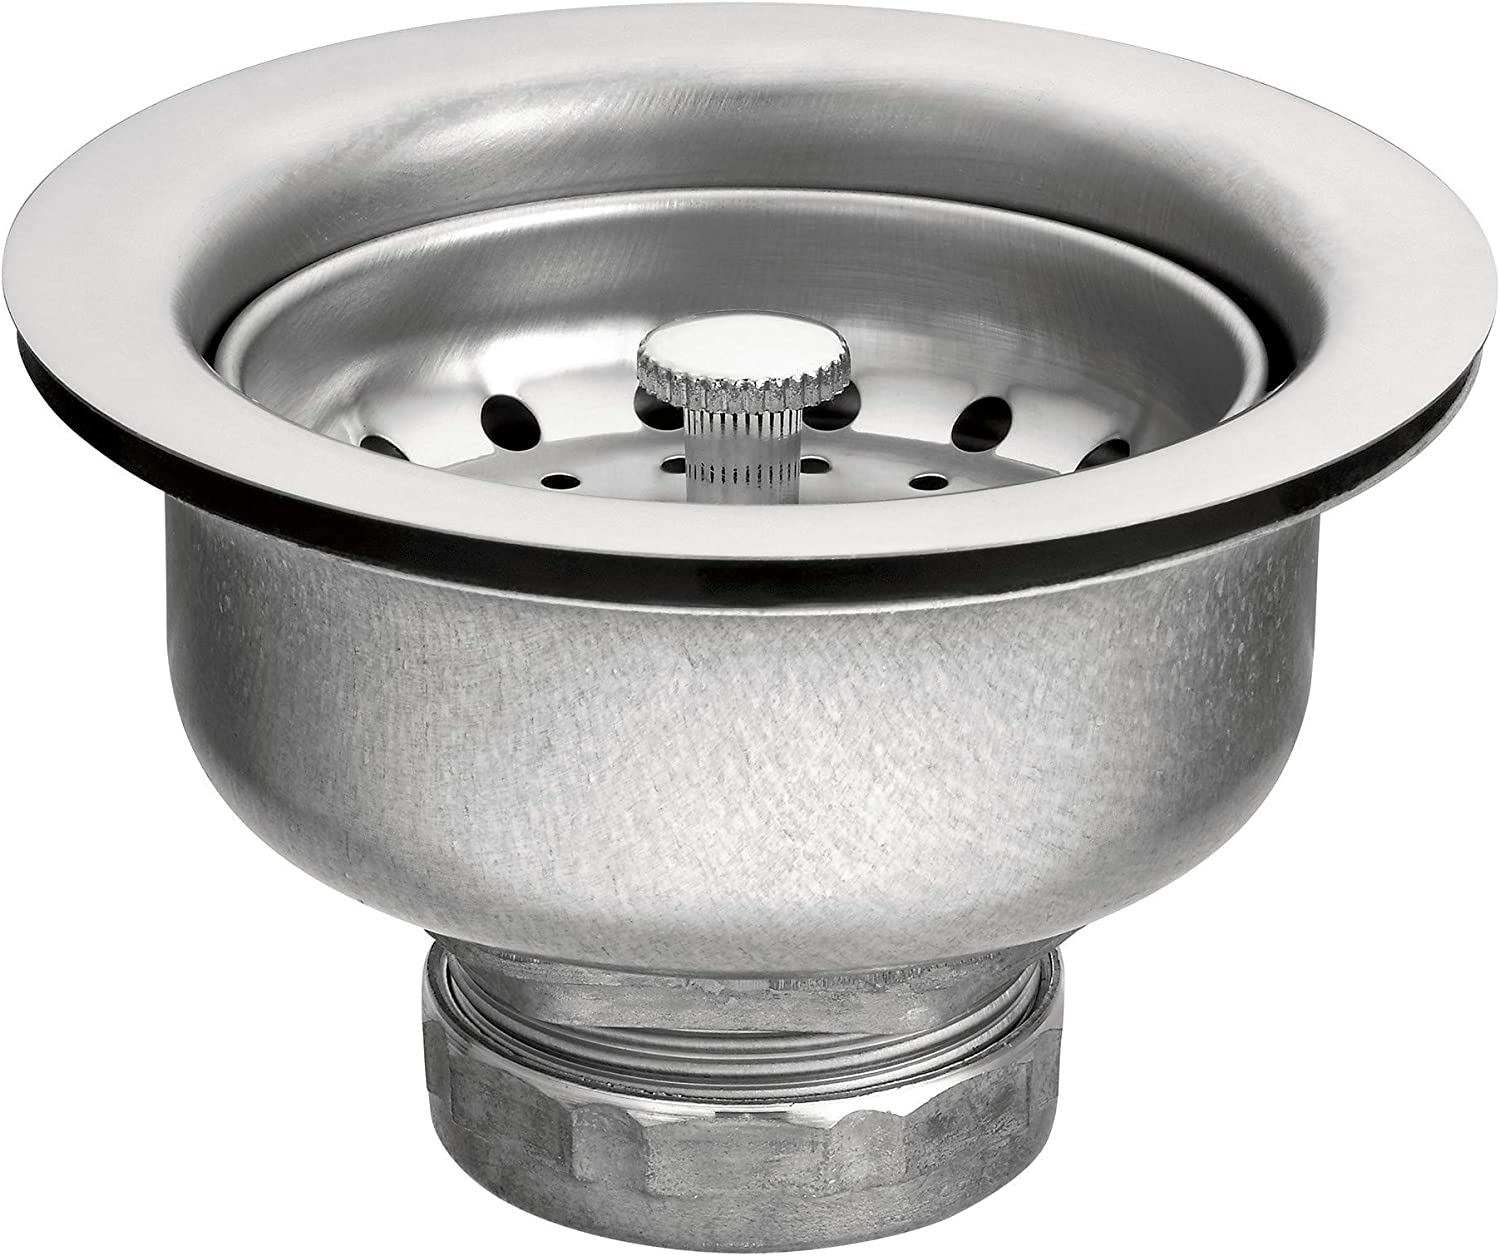 Moen 22037 3-1 2 Inch Drop-In Assembl with Sales for sale Same day shipping Strainer Basket Drain